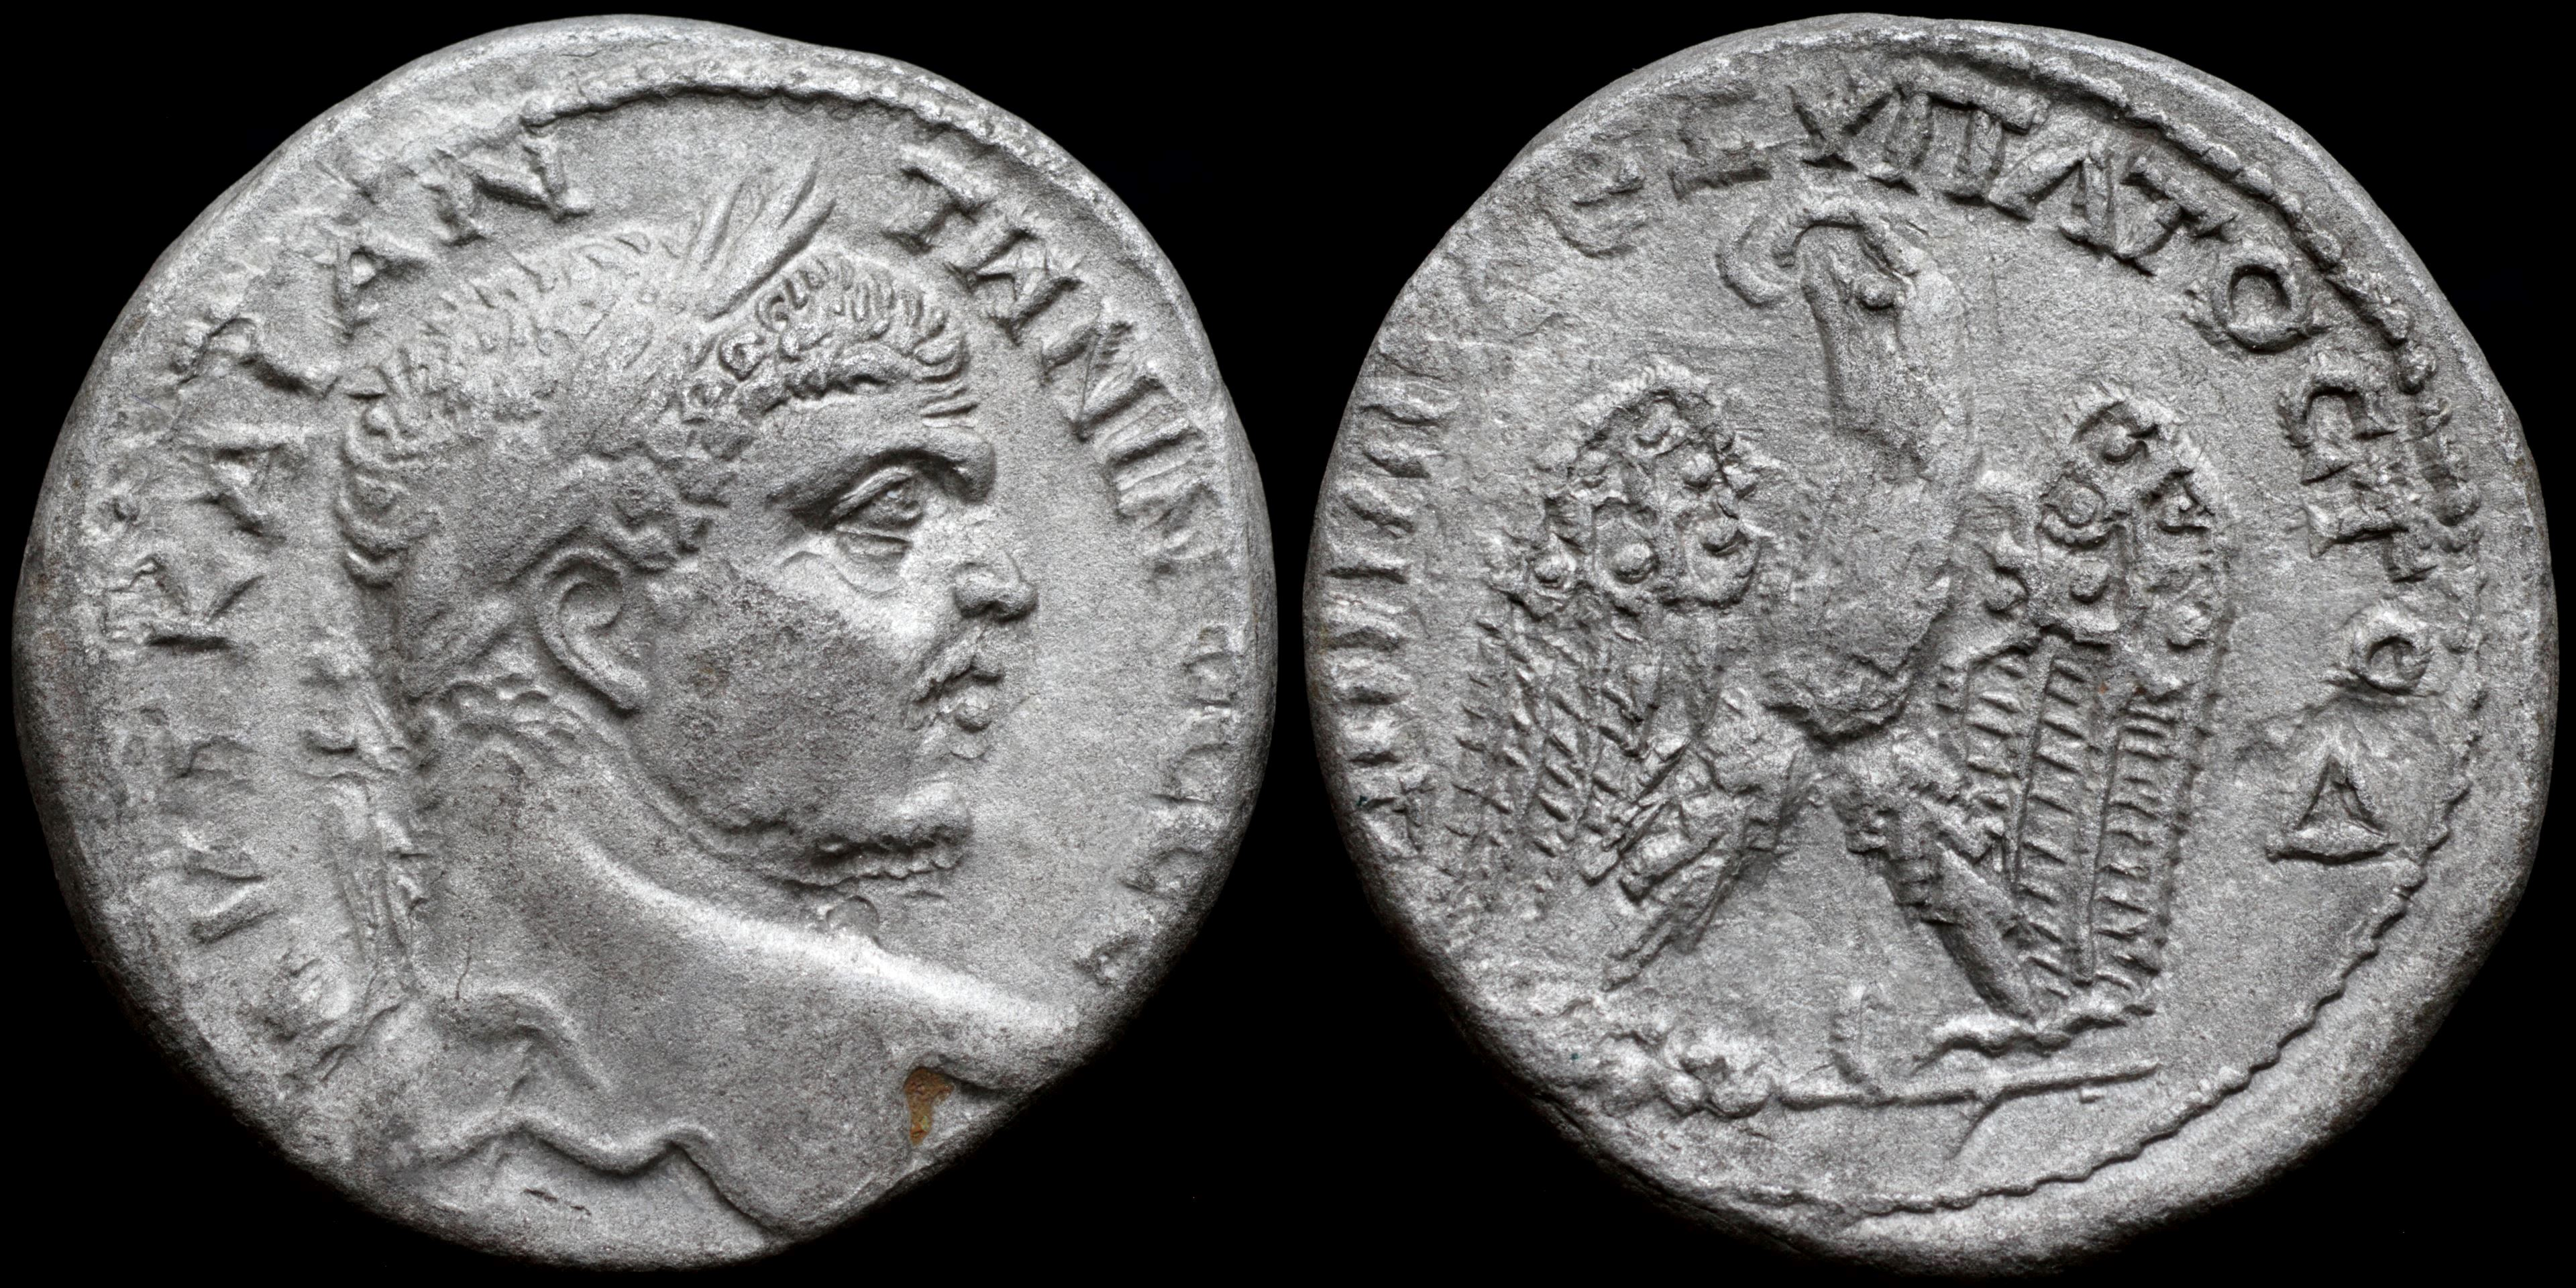 /Files/Images/Coinsite/CoinDB/Caracalla_Cyprus_tetra.jpg